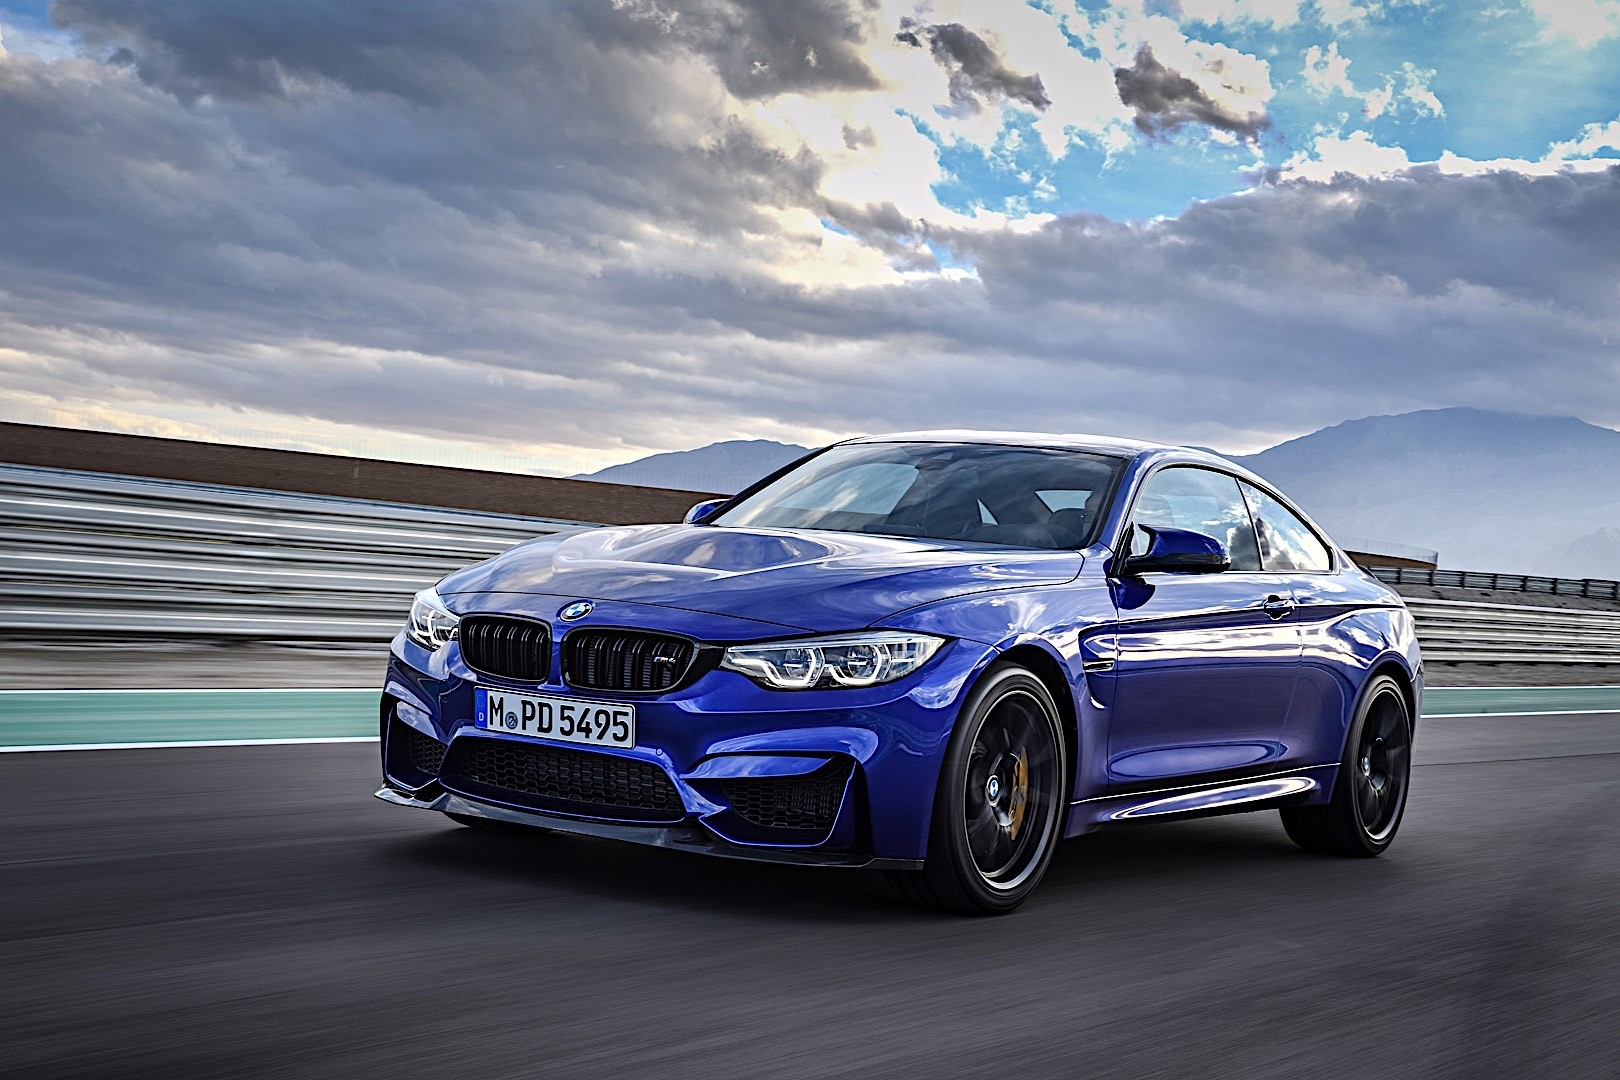 M4 Competition Package >> BMW M4 CS specs & photos - 2017, 2018, 2019, 2020 - autoevolution